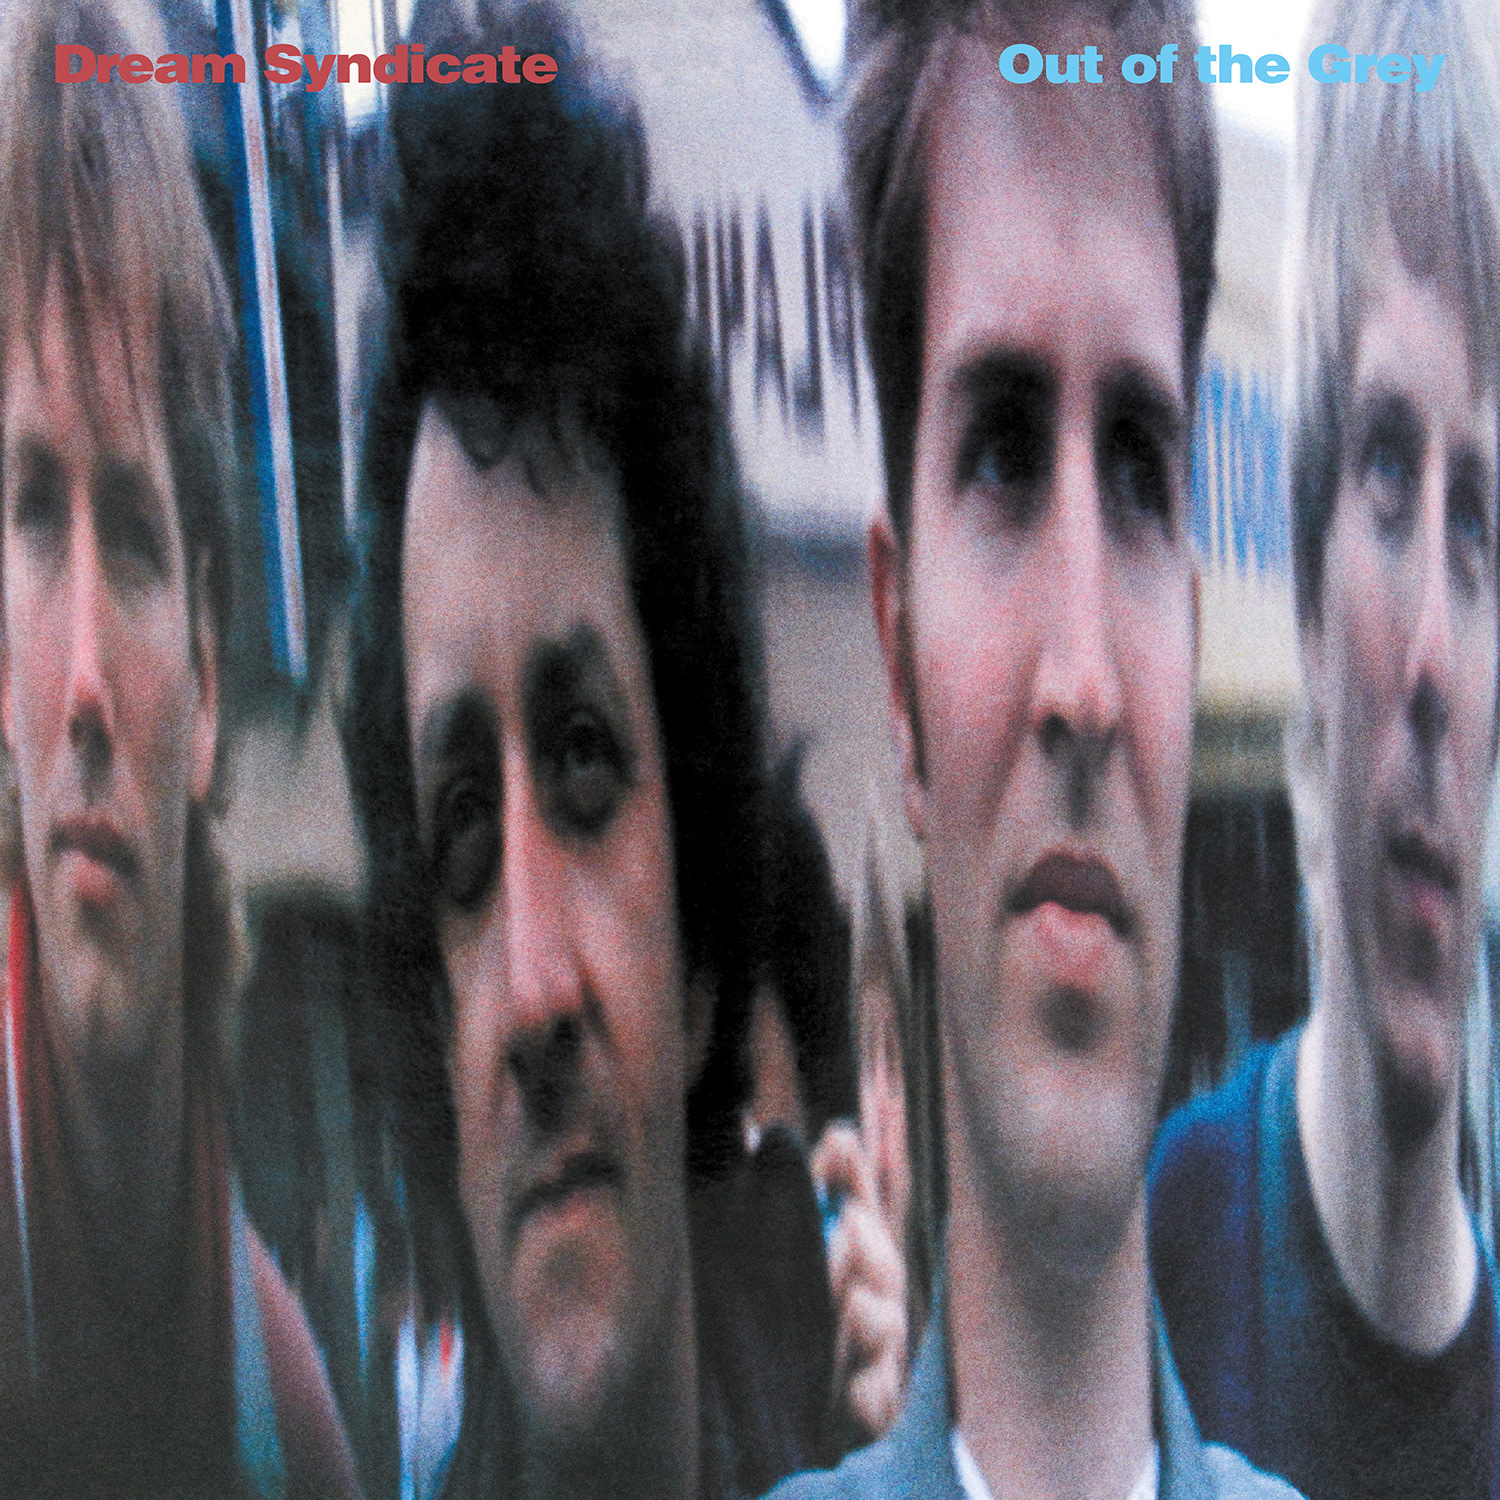 Dream Syndicate - Out Of The Grey